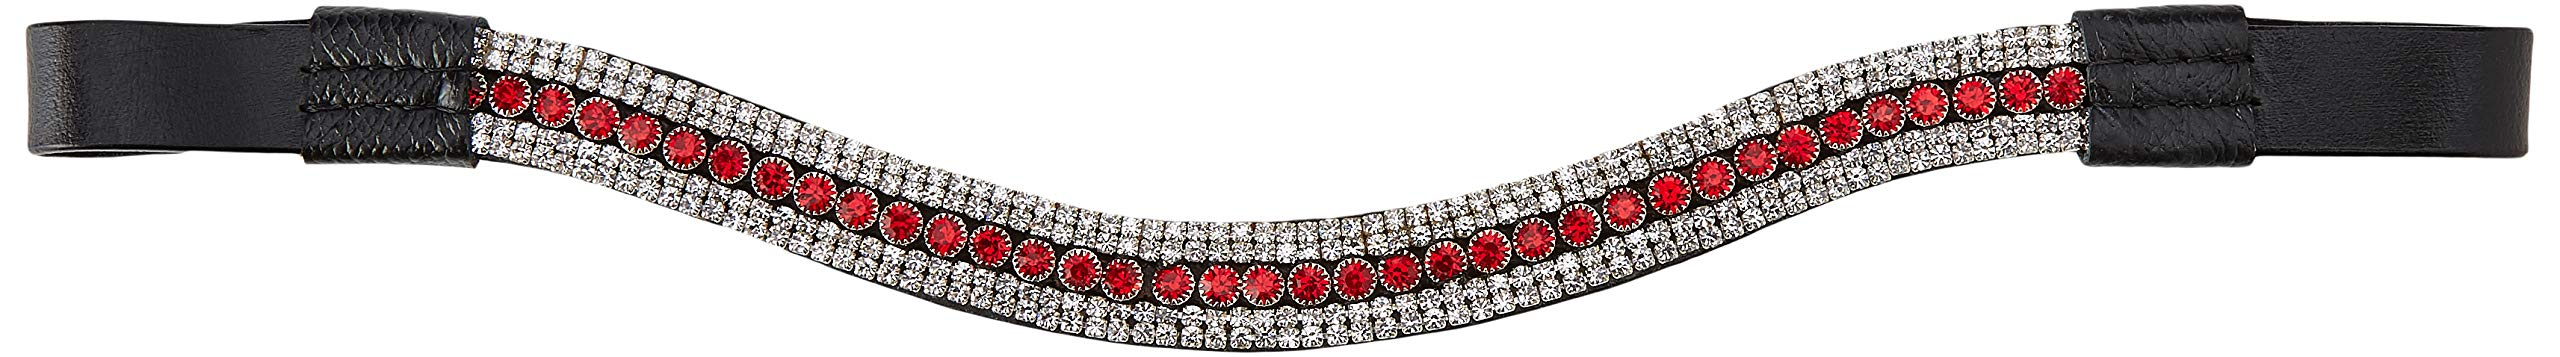 Cwell Equine Bling! Designer Sparkly Leather Browband5-Row Crystals RED & Clear (Pony 14'')